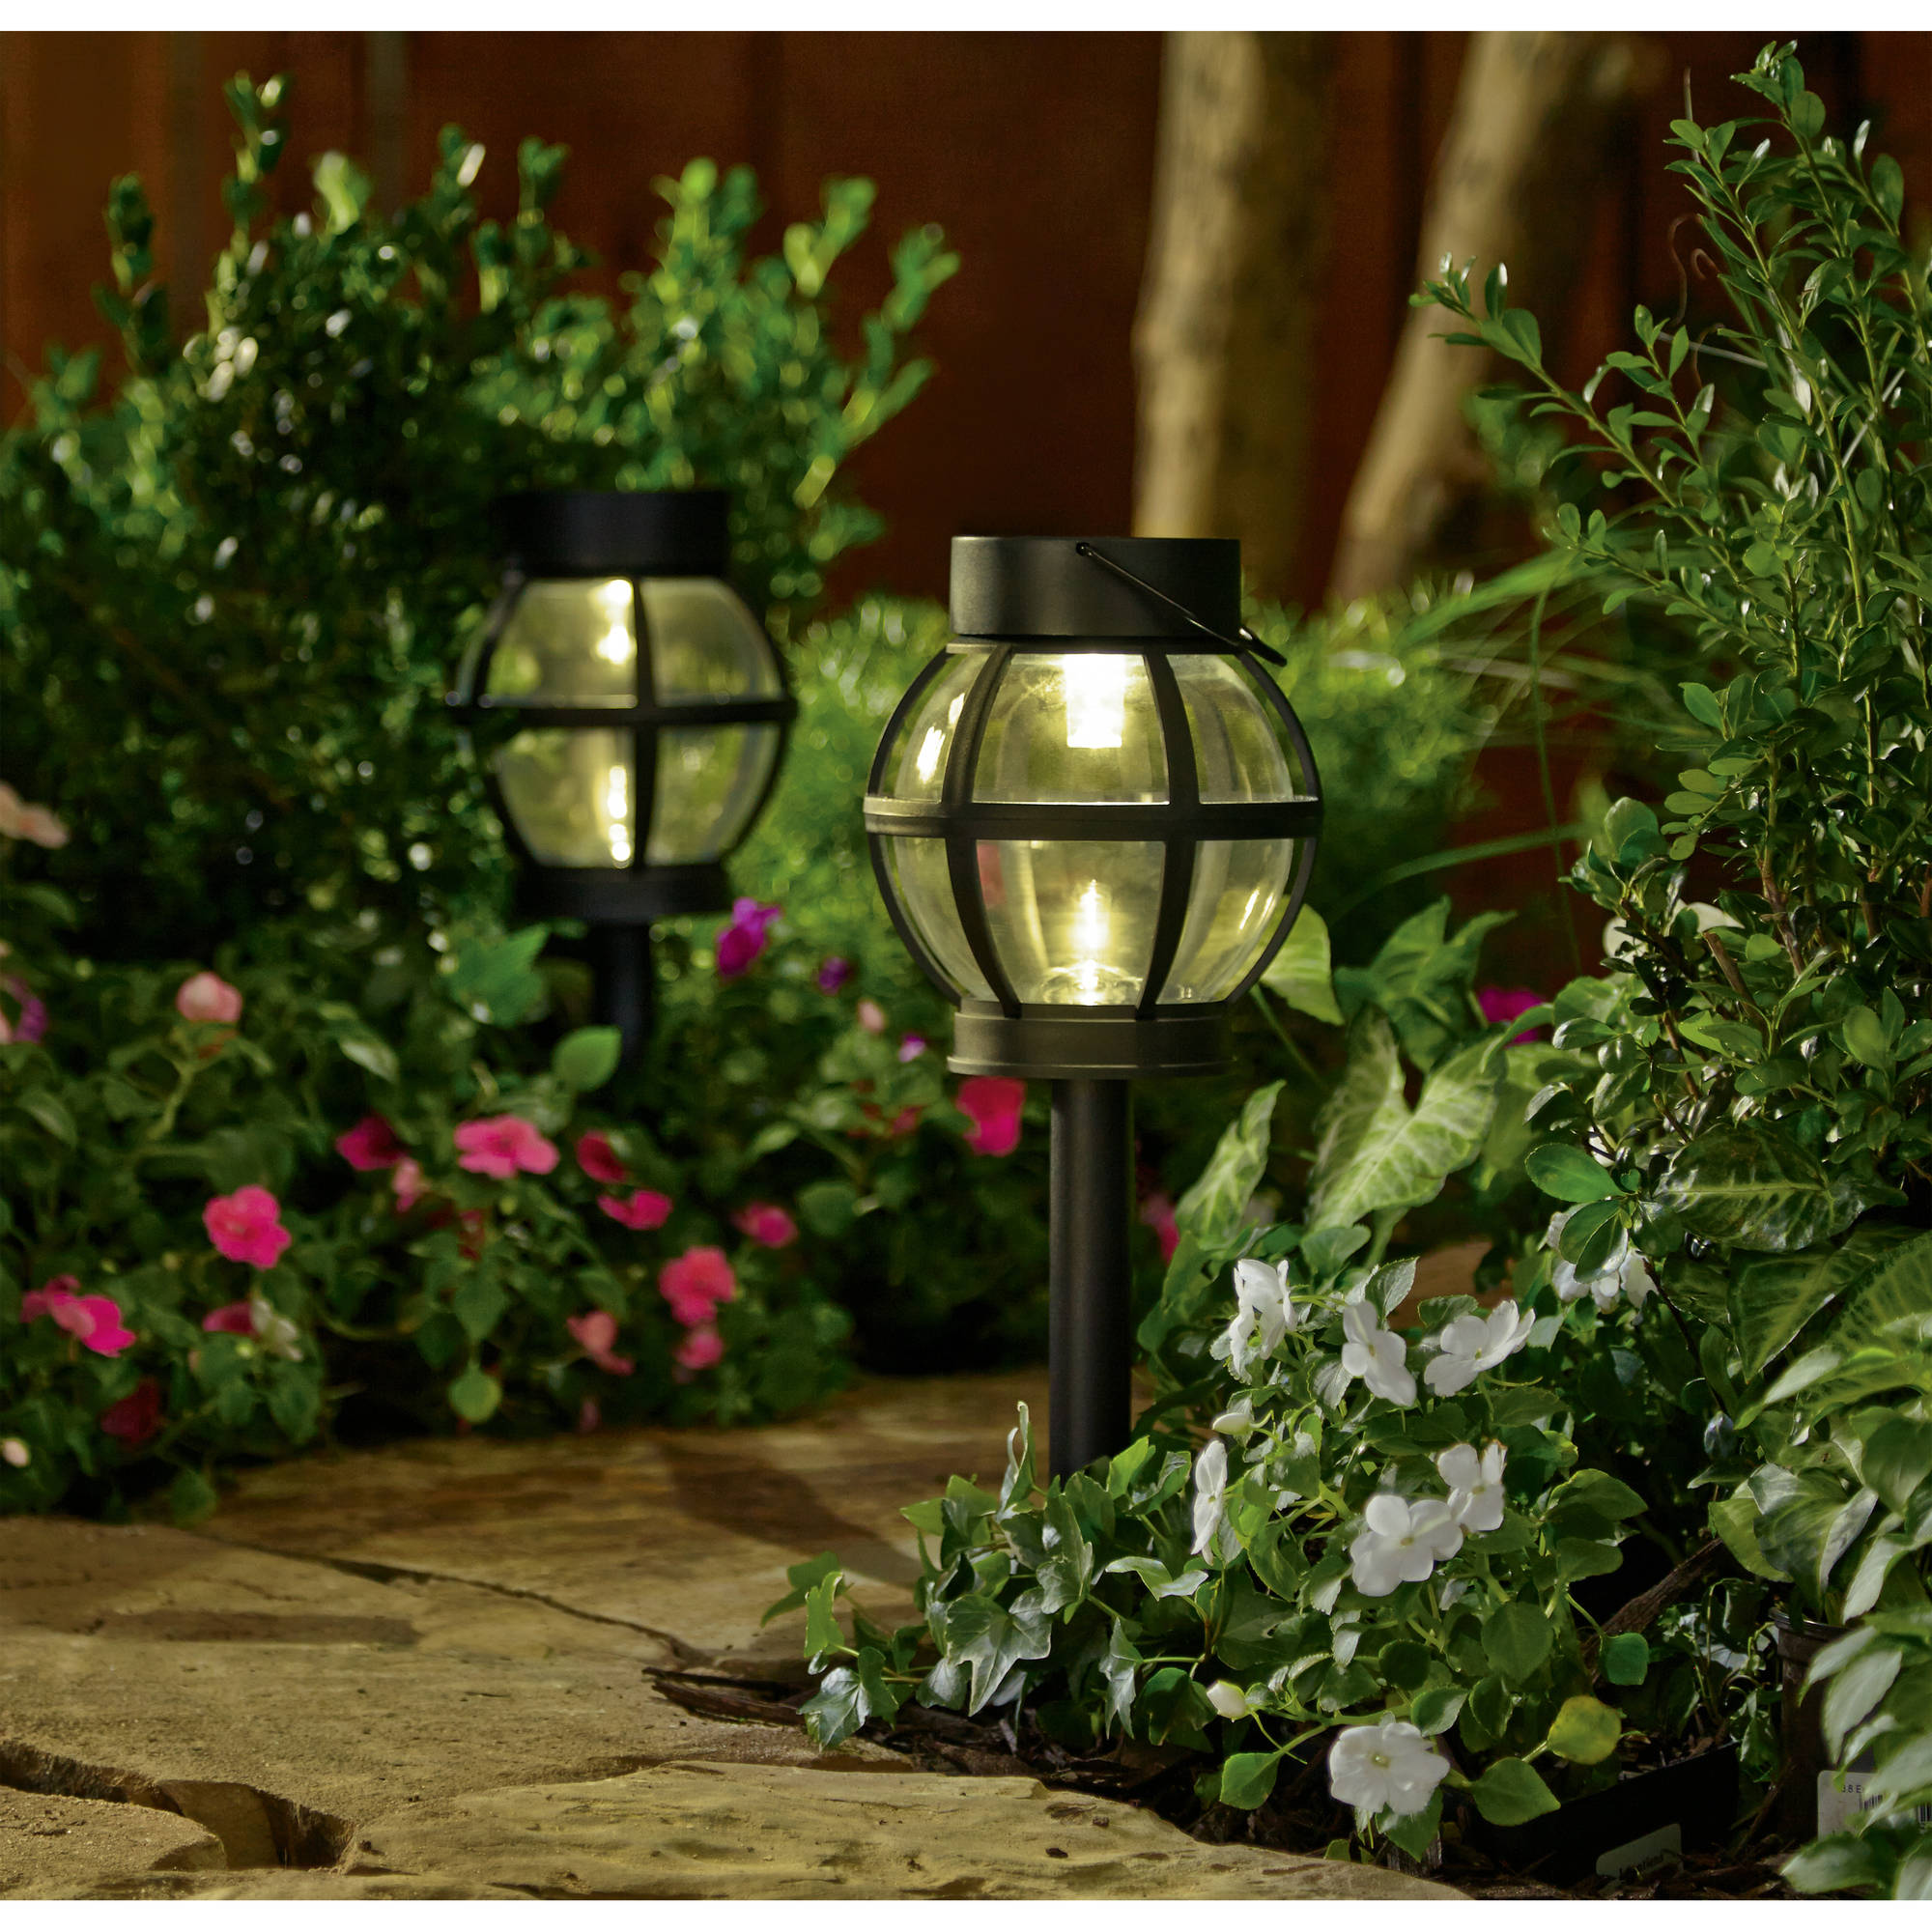 Better Homes and Gardens 2 Piece Solar-Powered Landscape Lighting Set